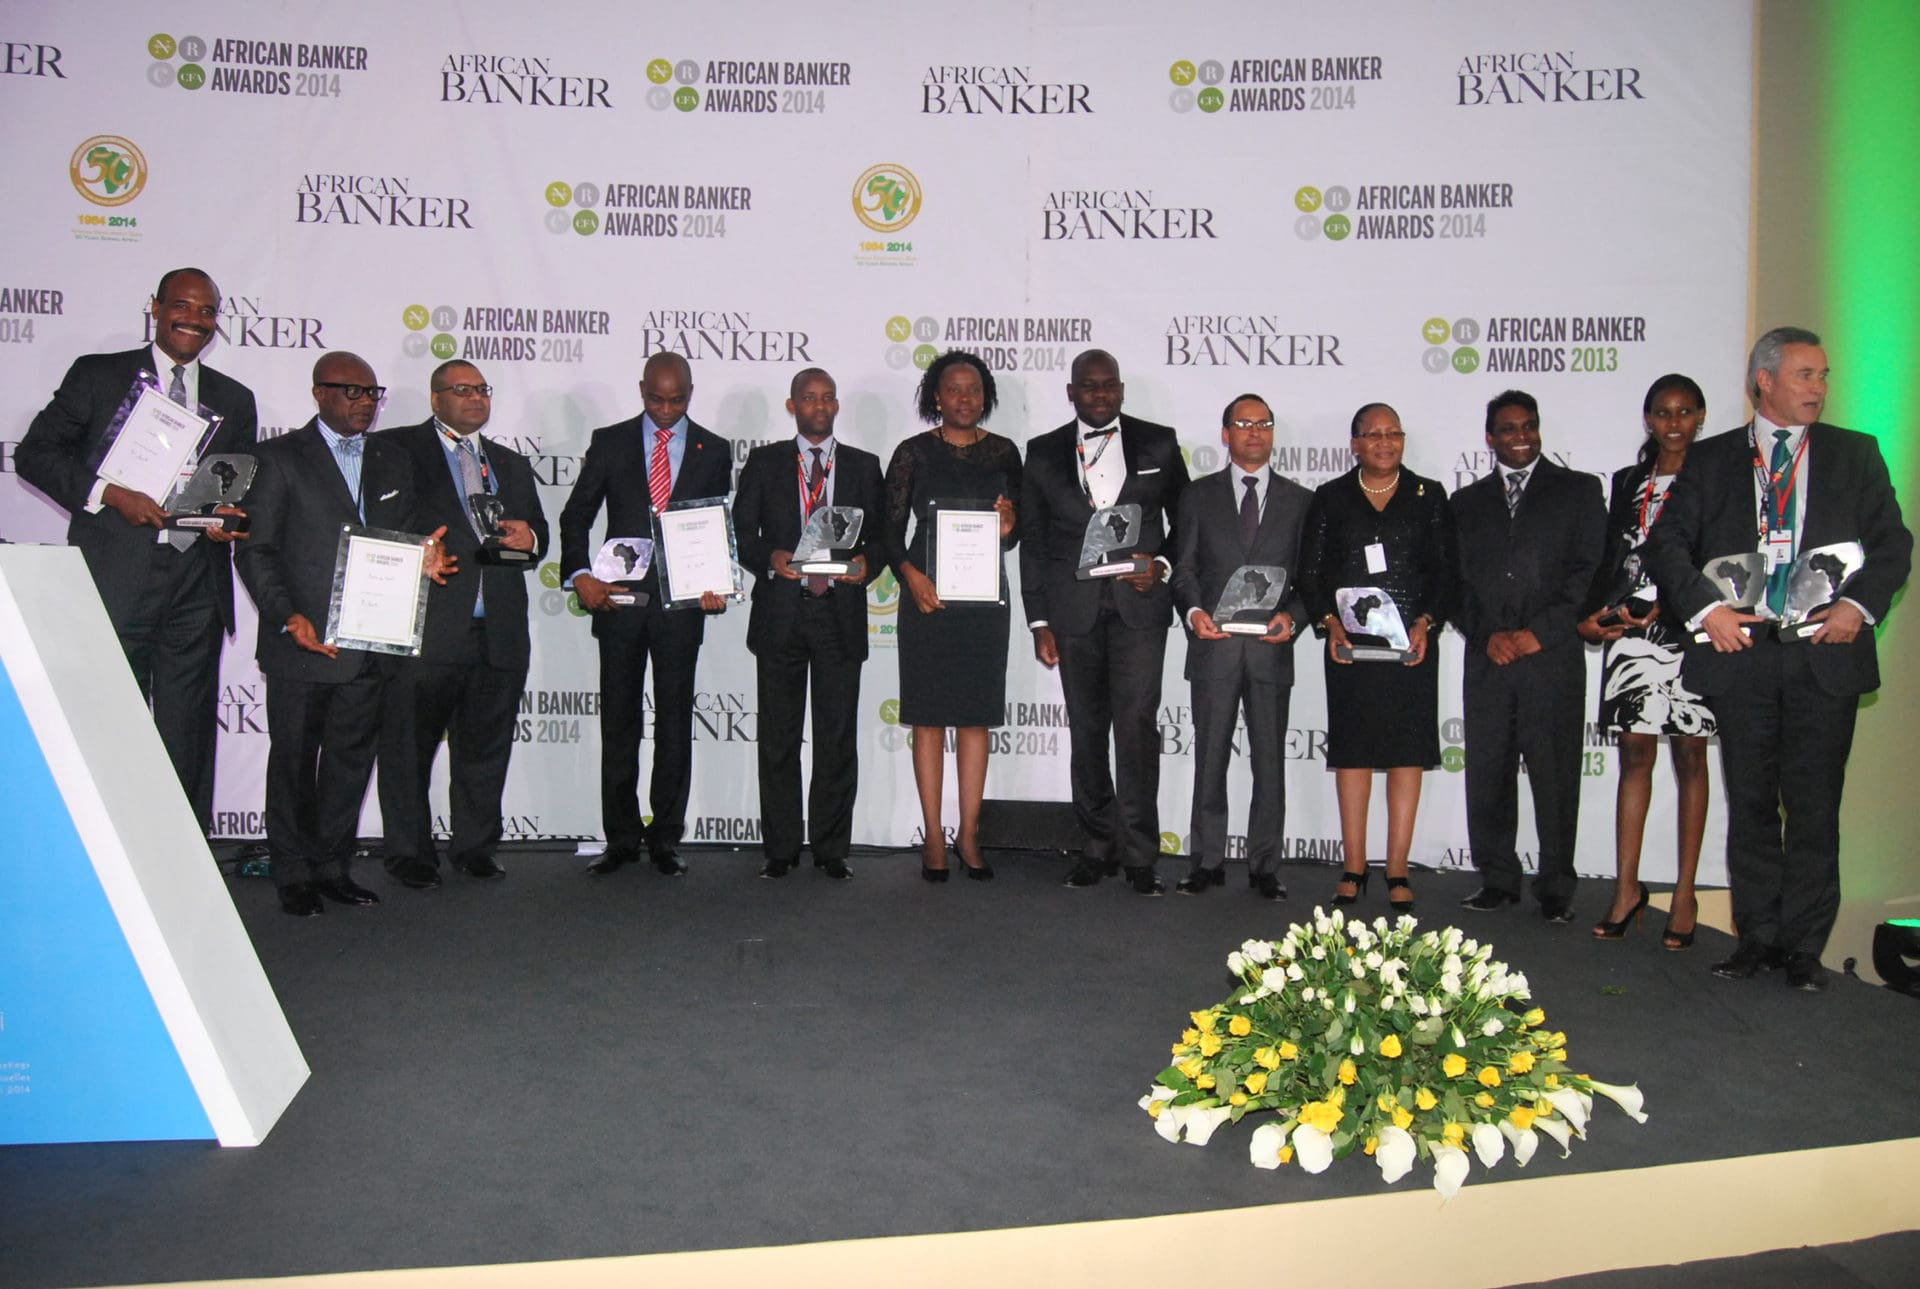 African Banker Awards 2014 (credit IC Publications)